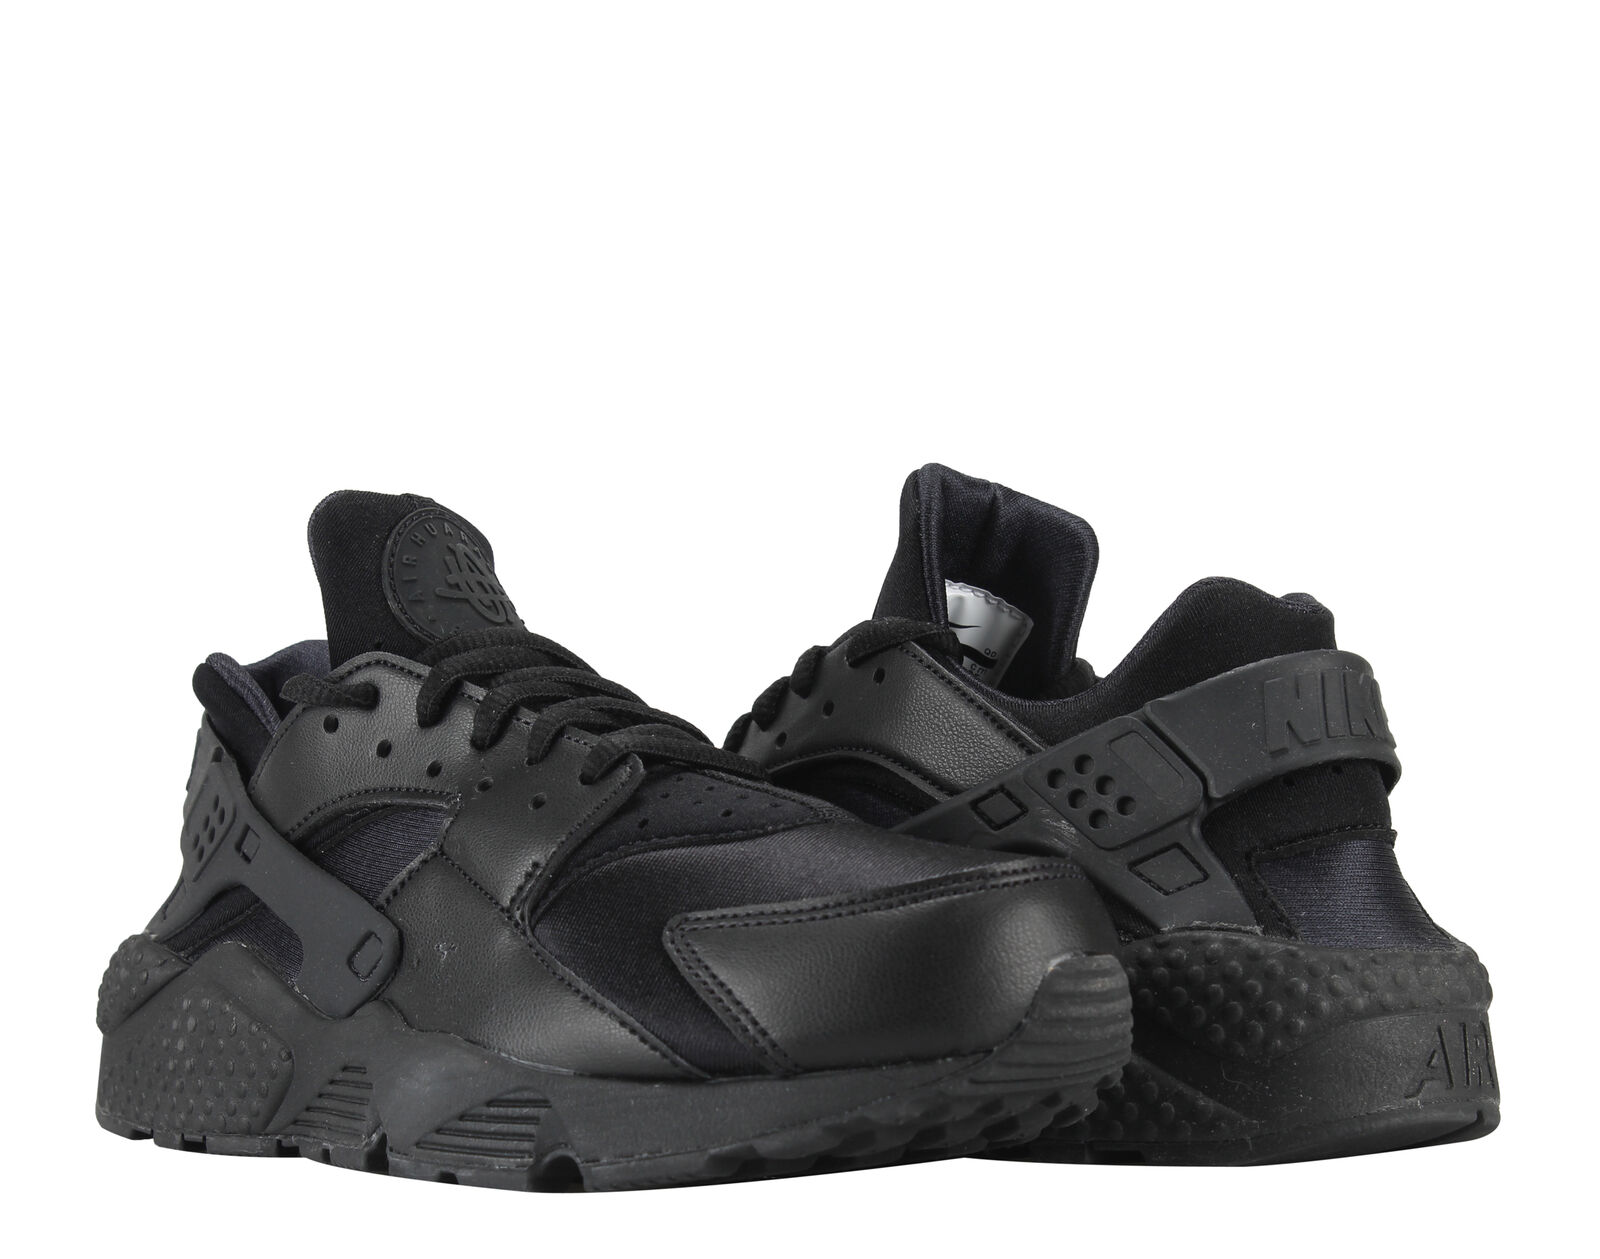 Nike Air Huarache Run Black/Black Women's Running Shoes 634835-012